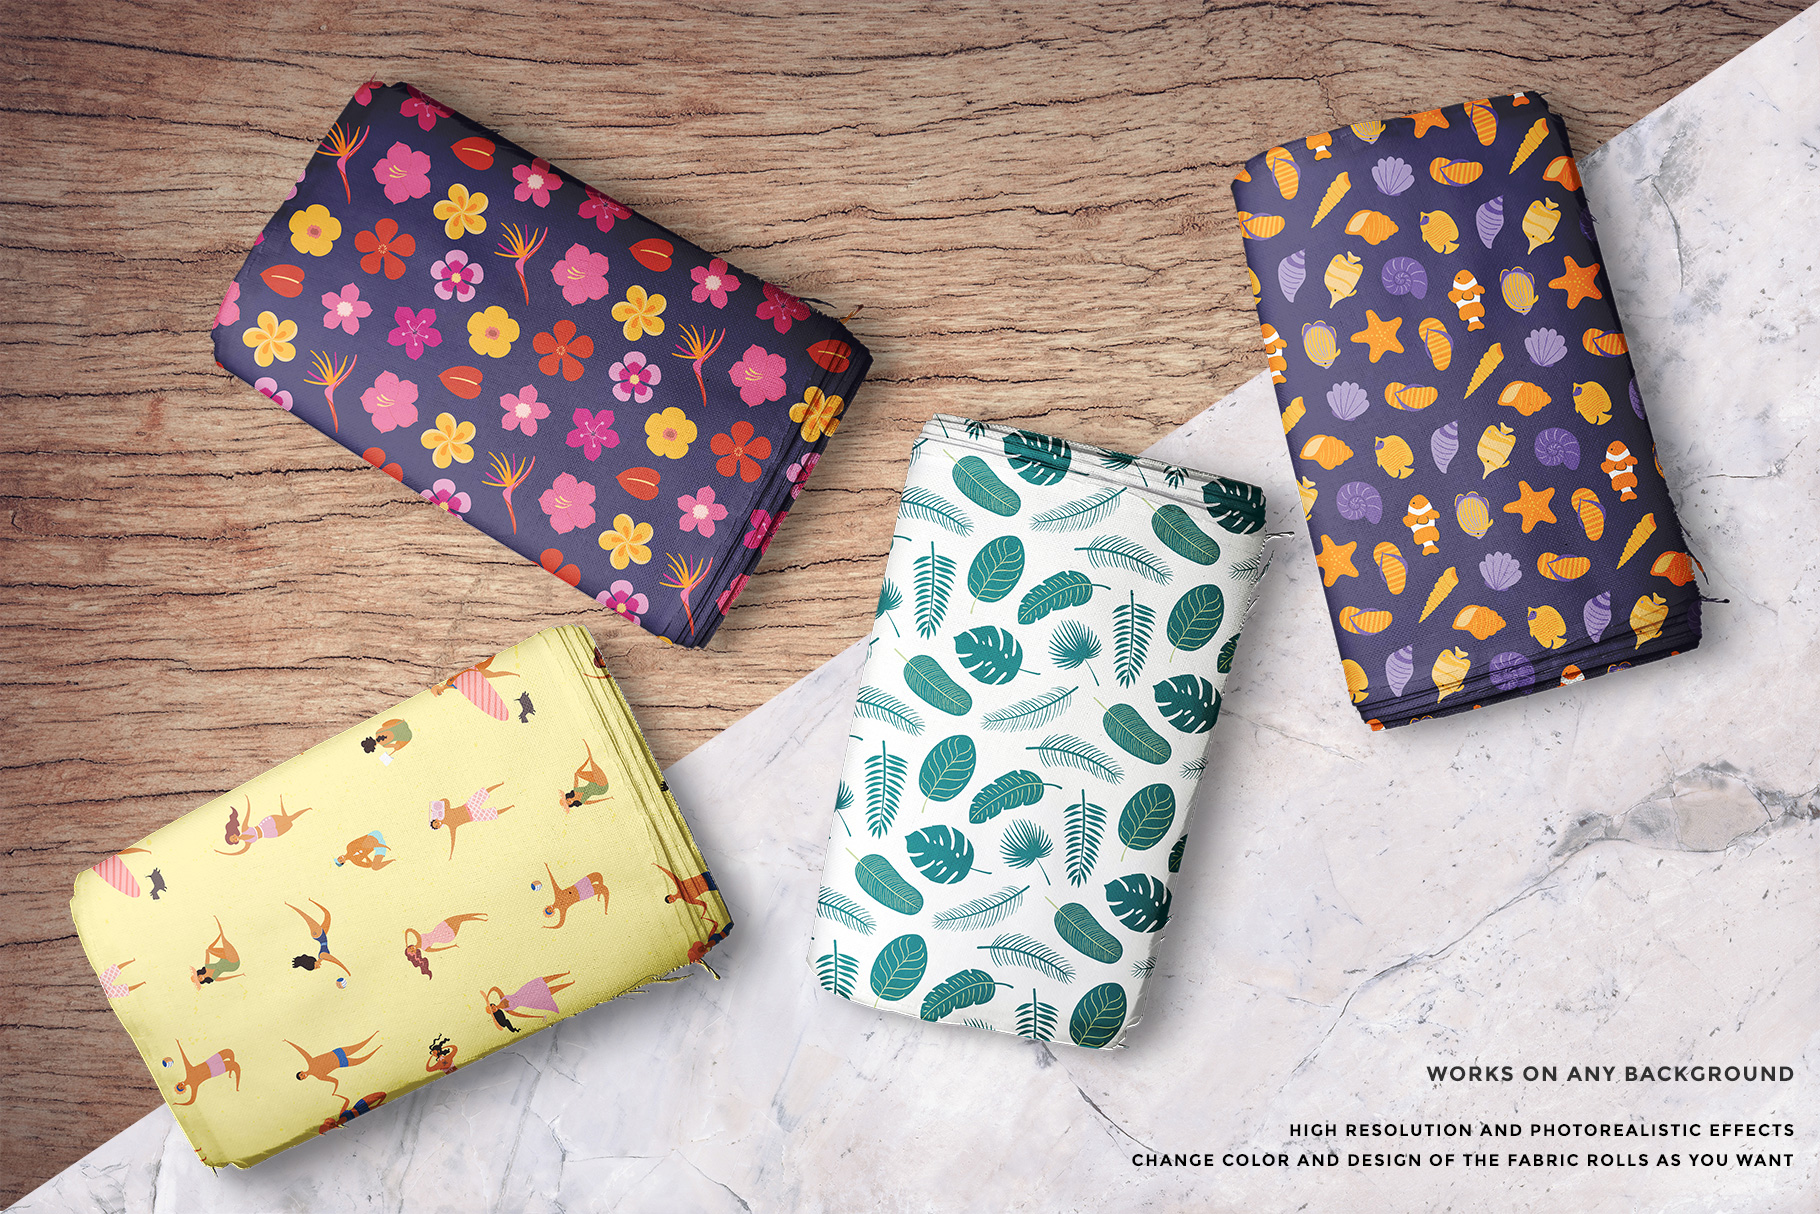 background options of the top view fabric rolls mockup set